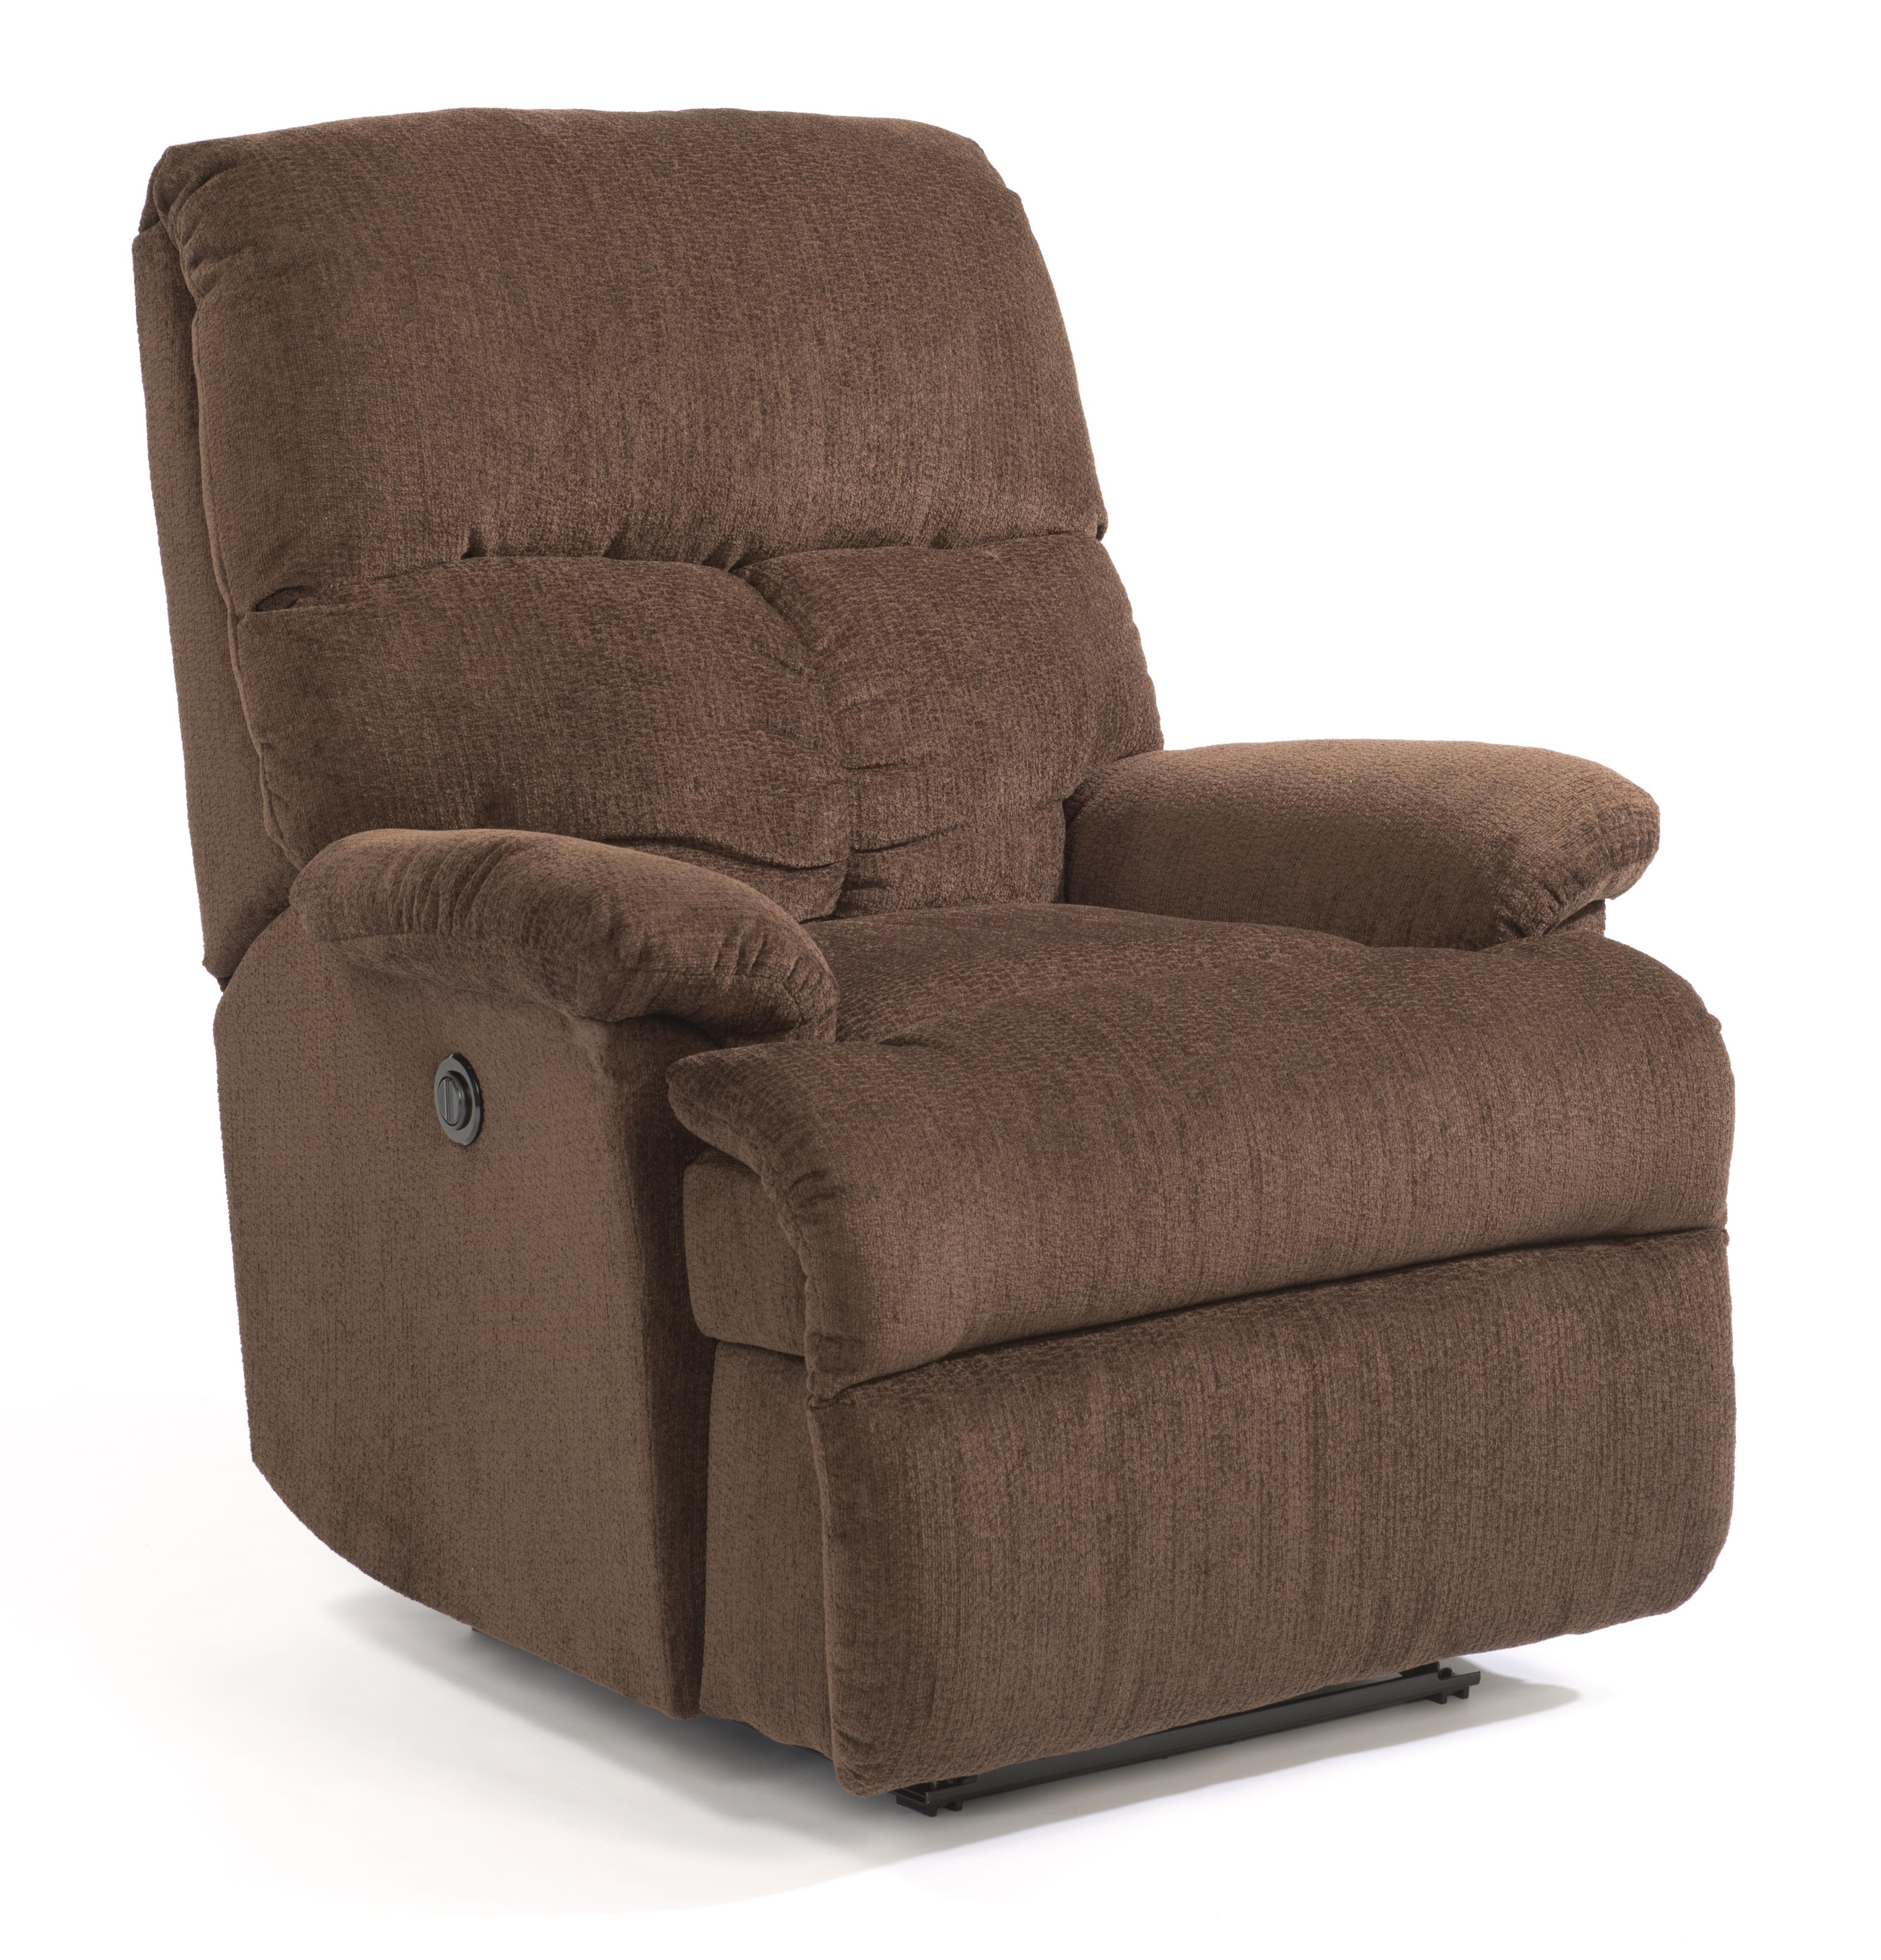 Flexsteel Triton Power Wall Recliner With Chaise Seating